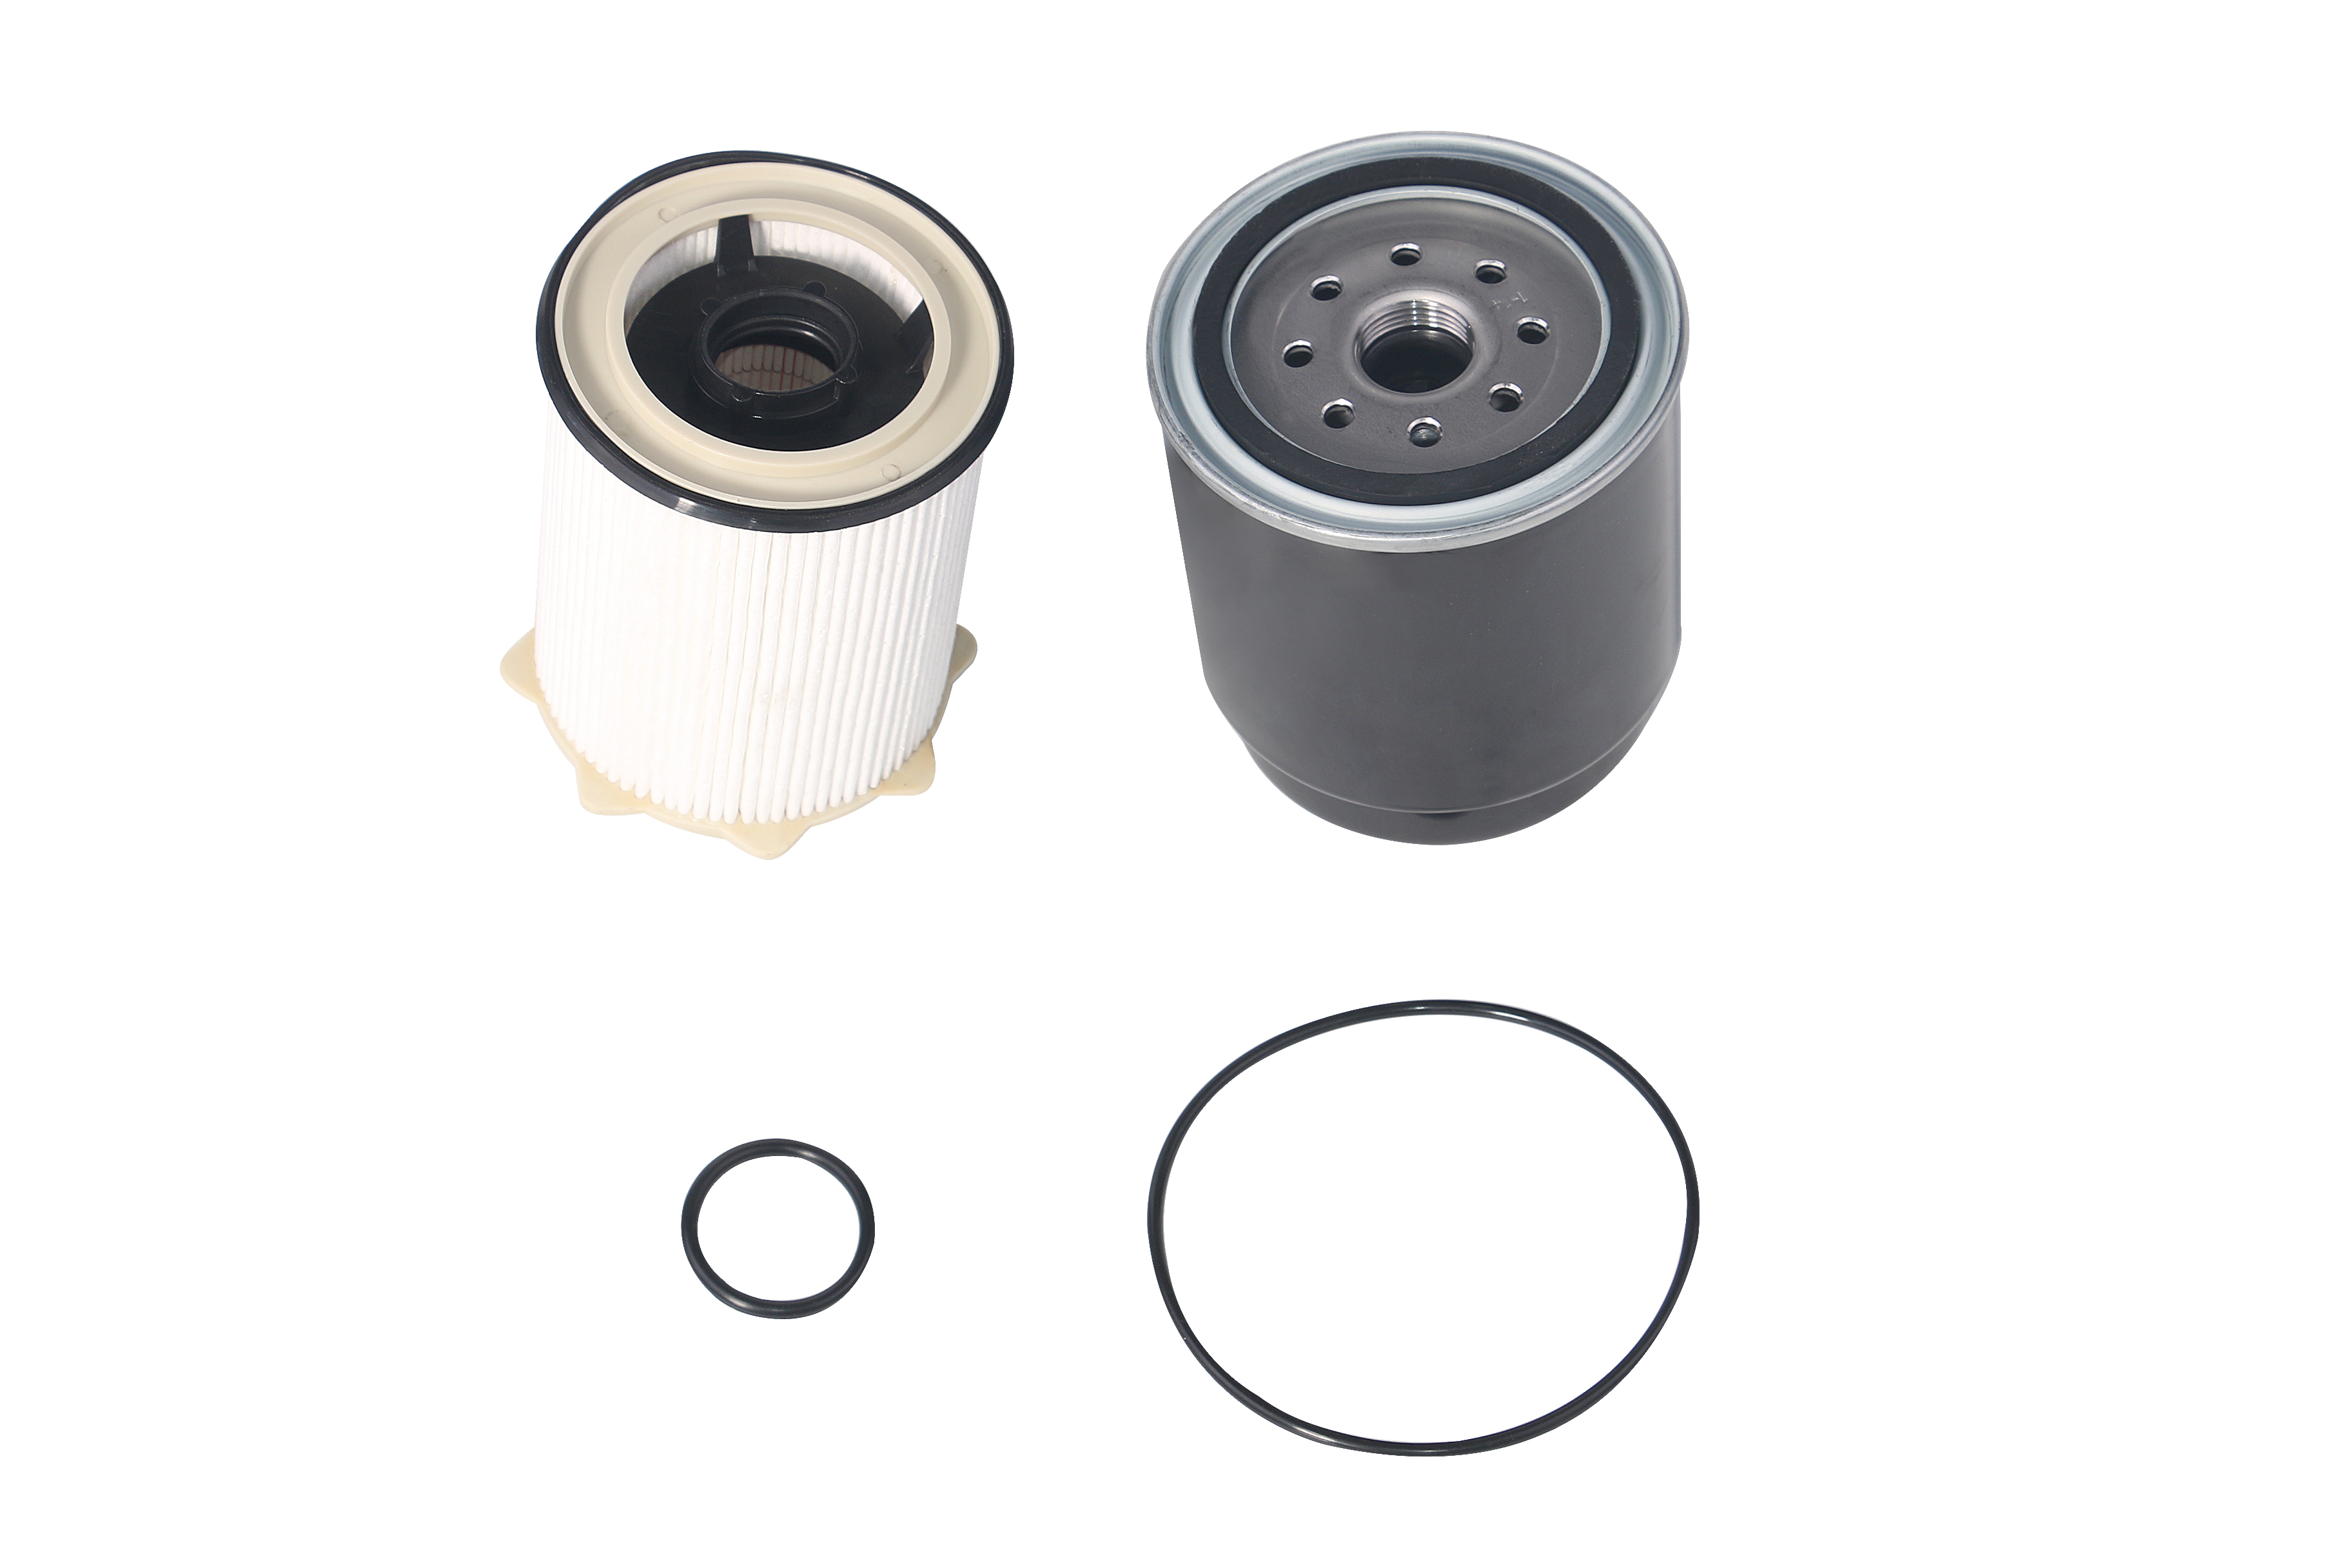 Diesel Fuel Filter Set Water Separator - Fits Ram 2500, 3500, 4500, 5500 6.7L Cummins Engine 2013-2018 Image